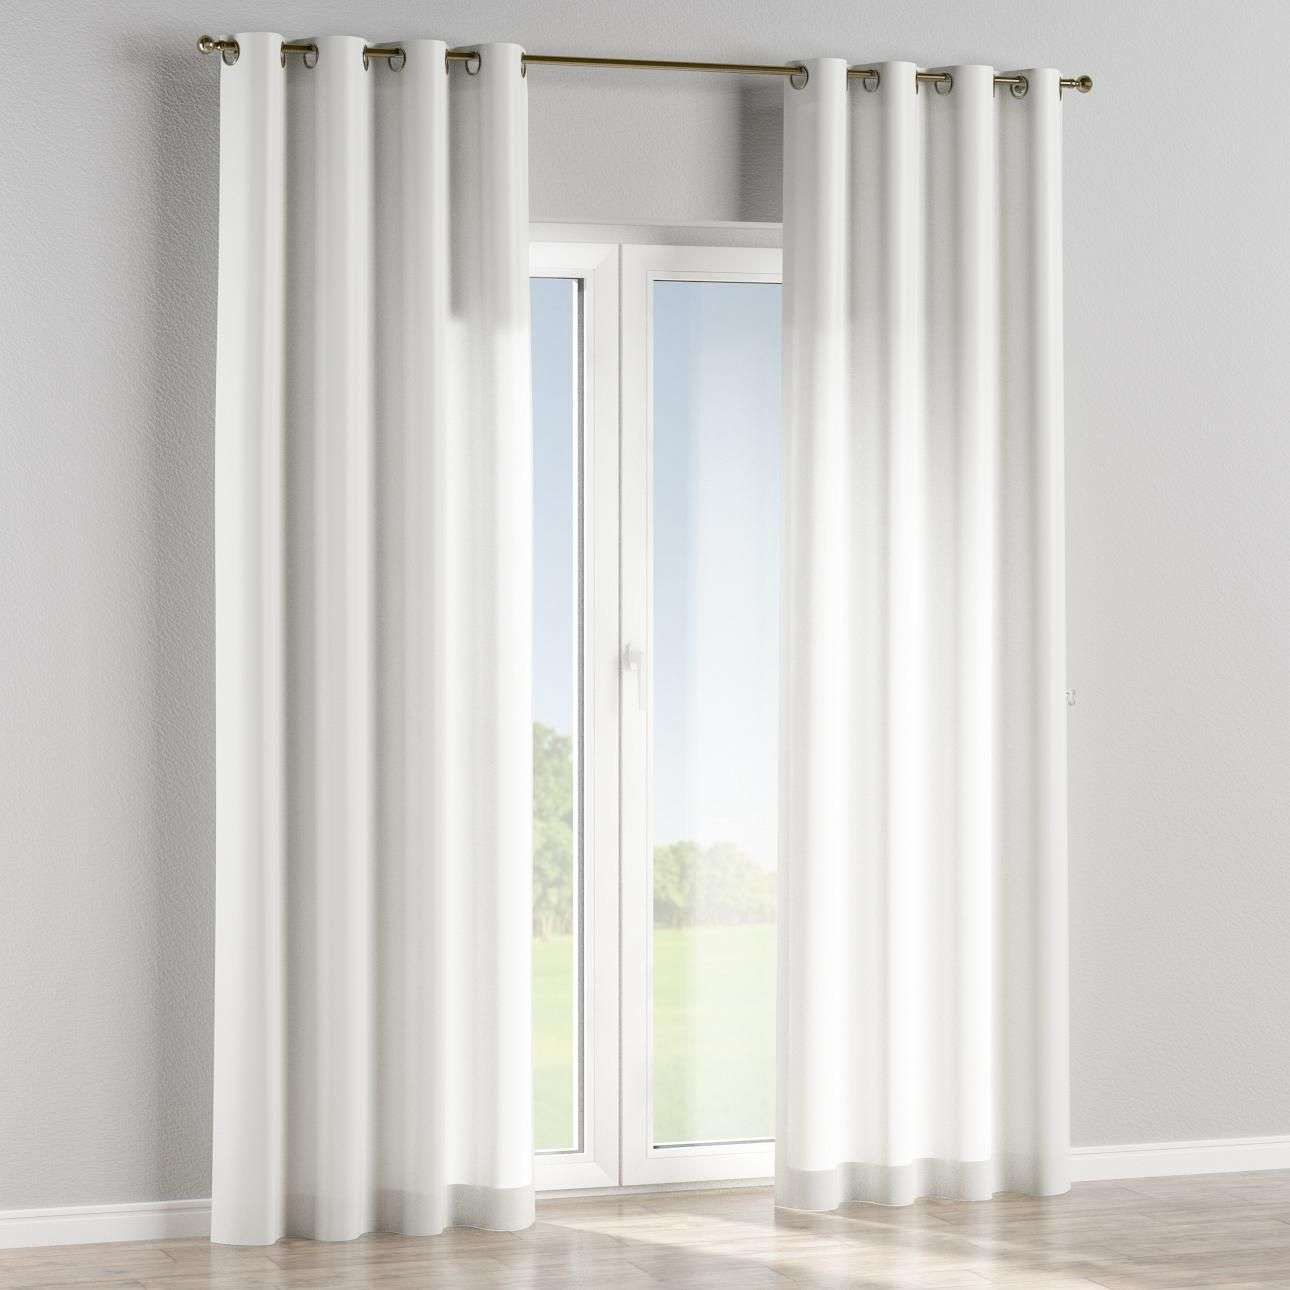 Eyelet lined curtains in collection Freestyle, fabric: 150-20